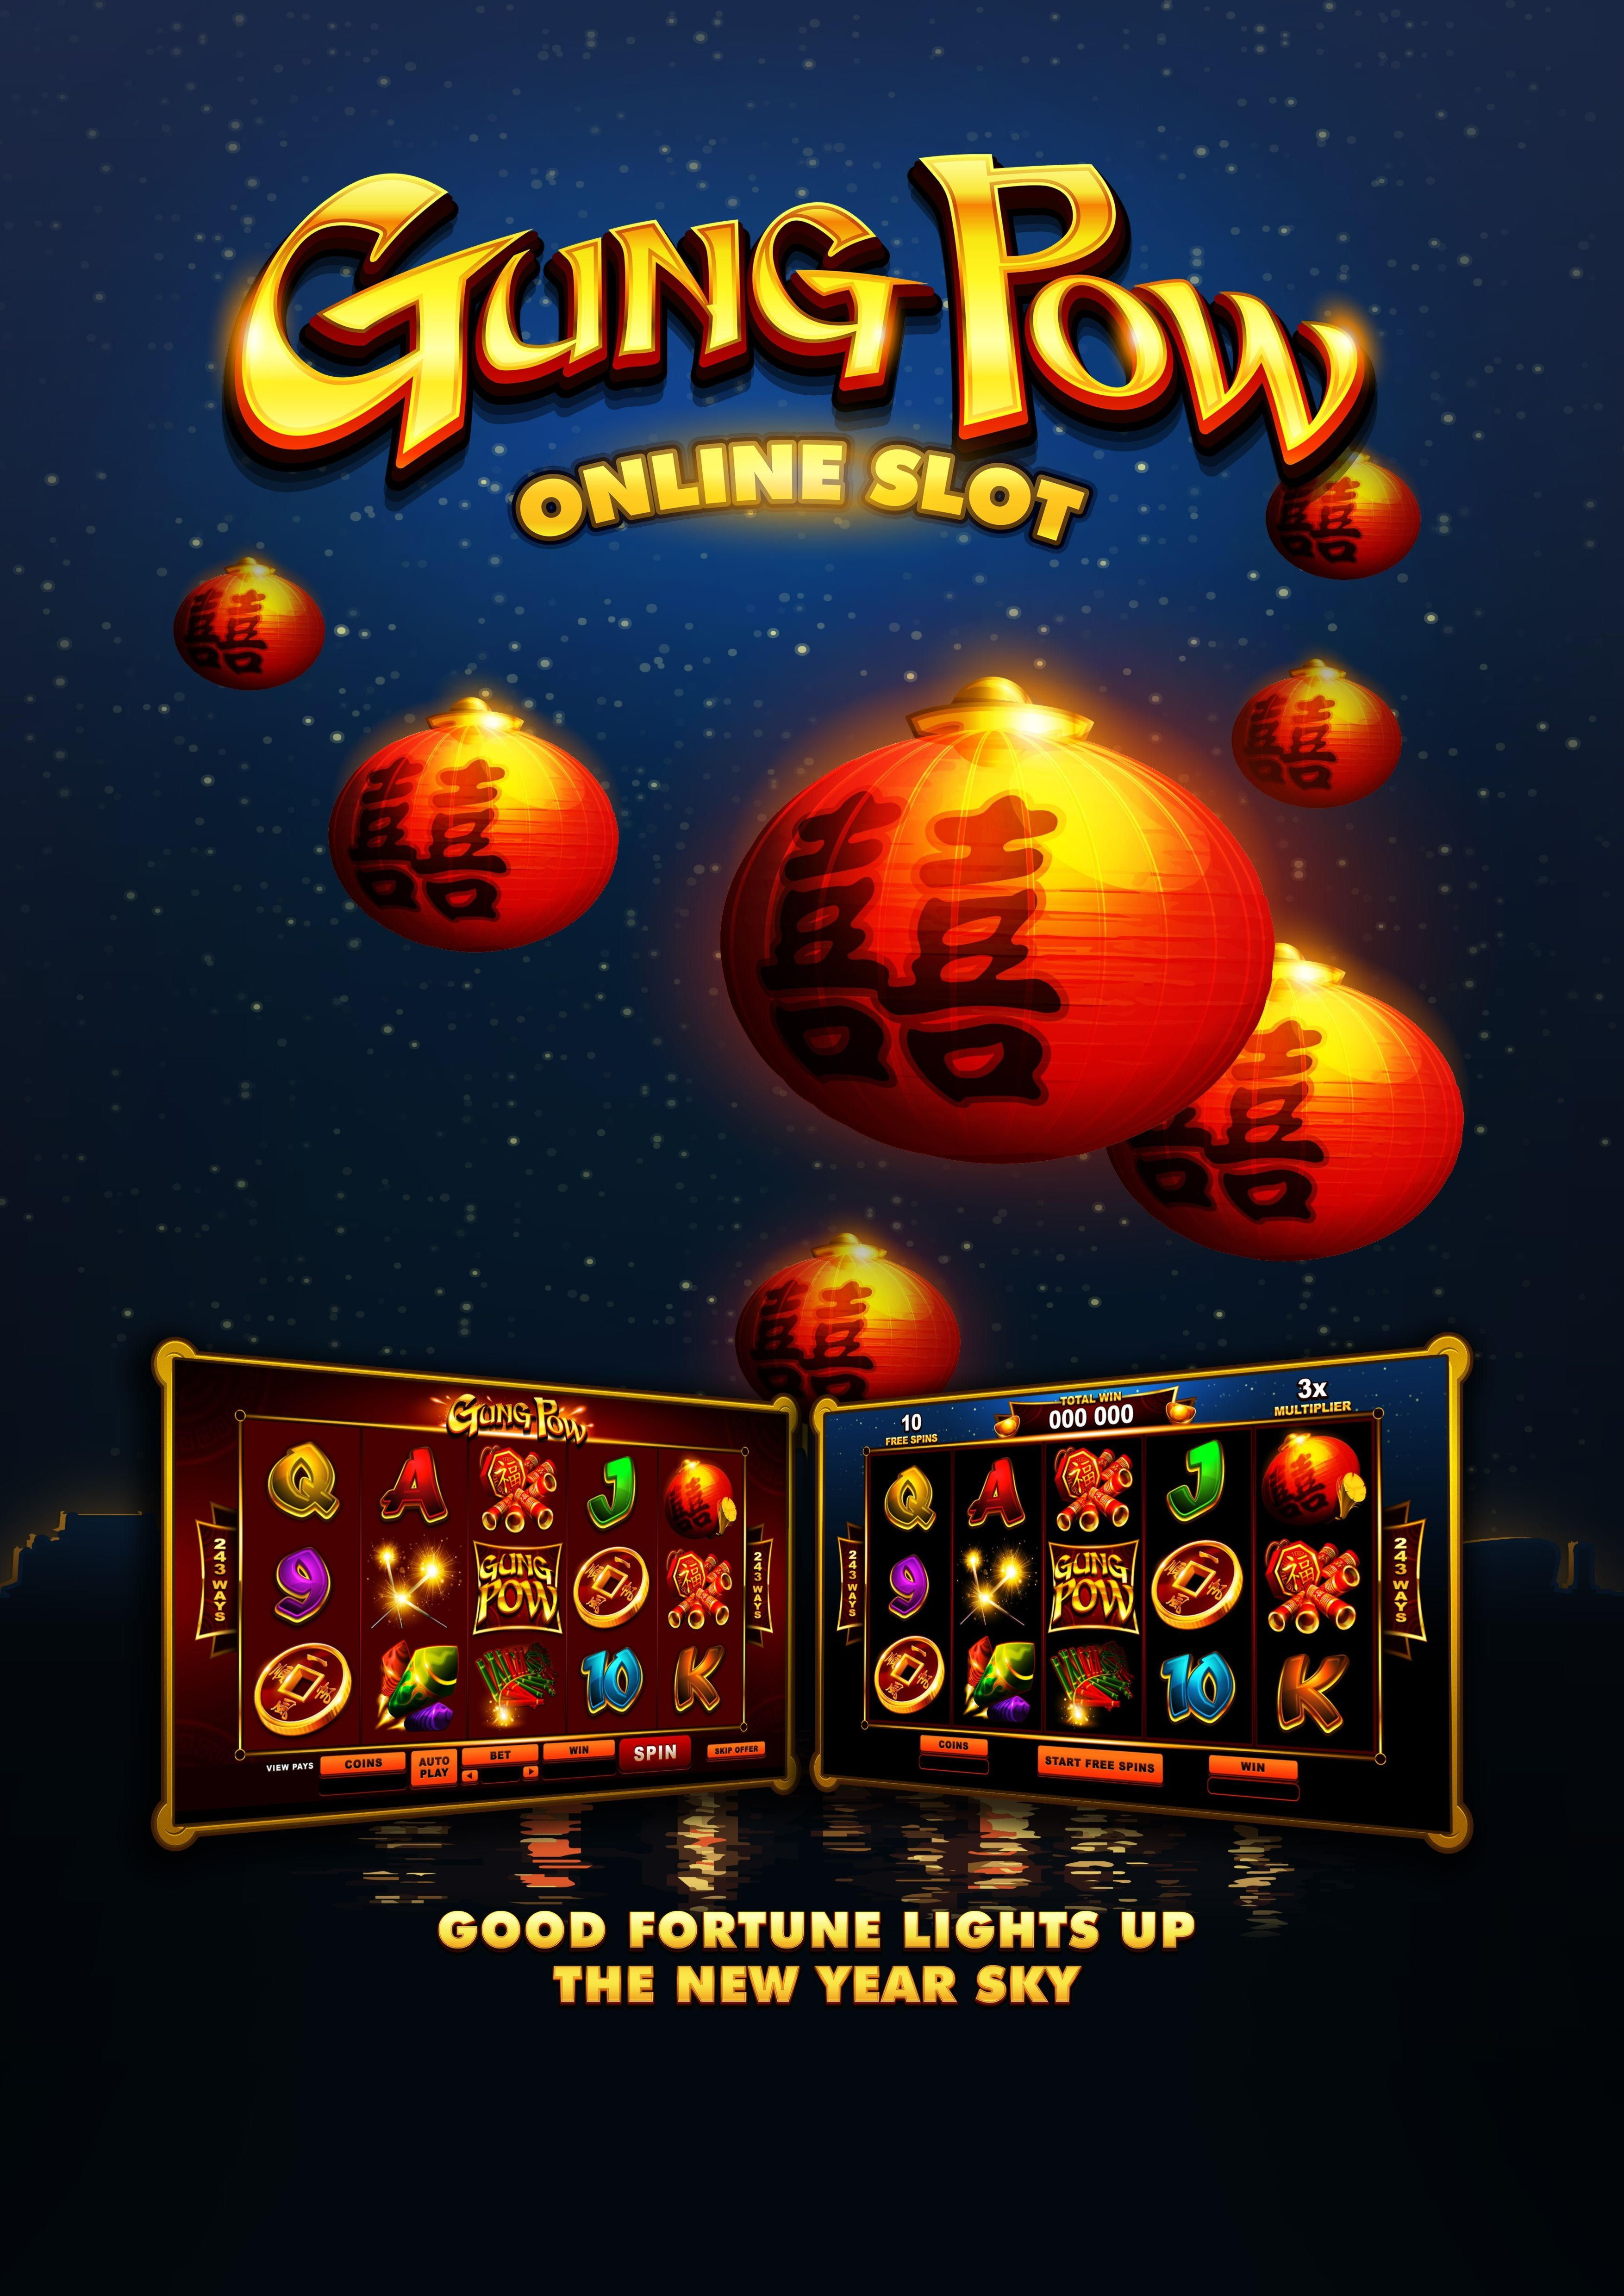 165 Free Spins No Deposit Casino At 777 Casino Casino Games